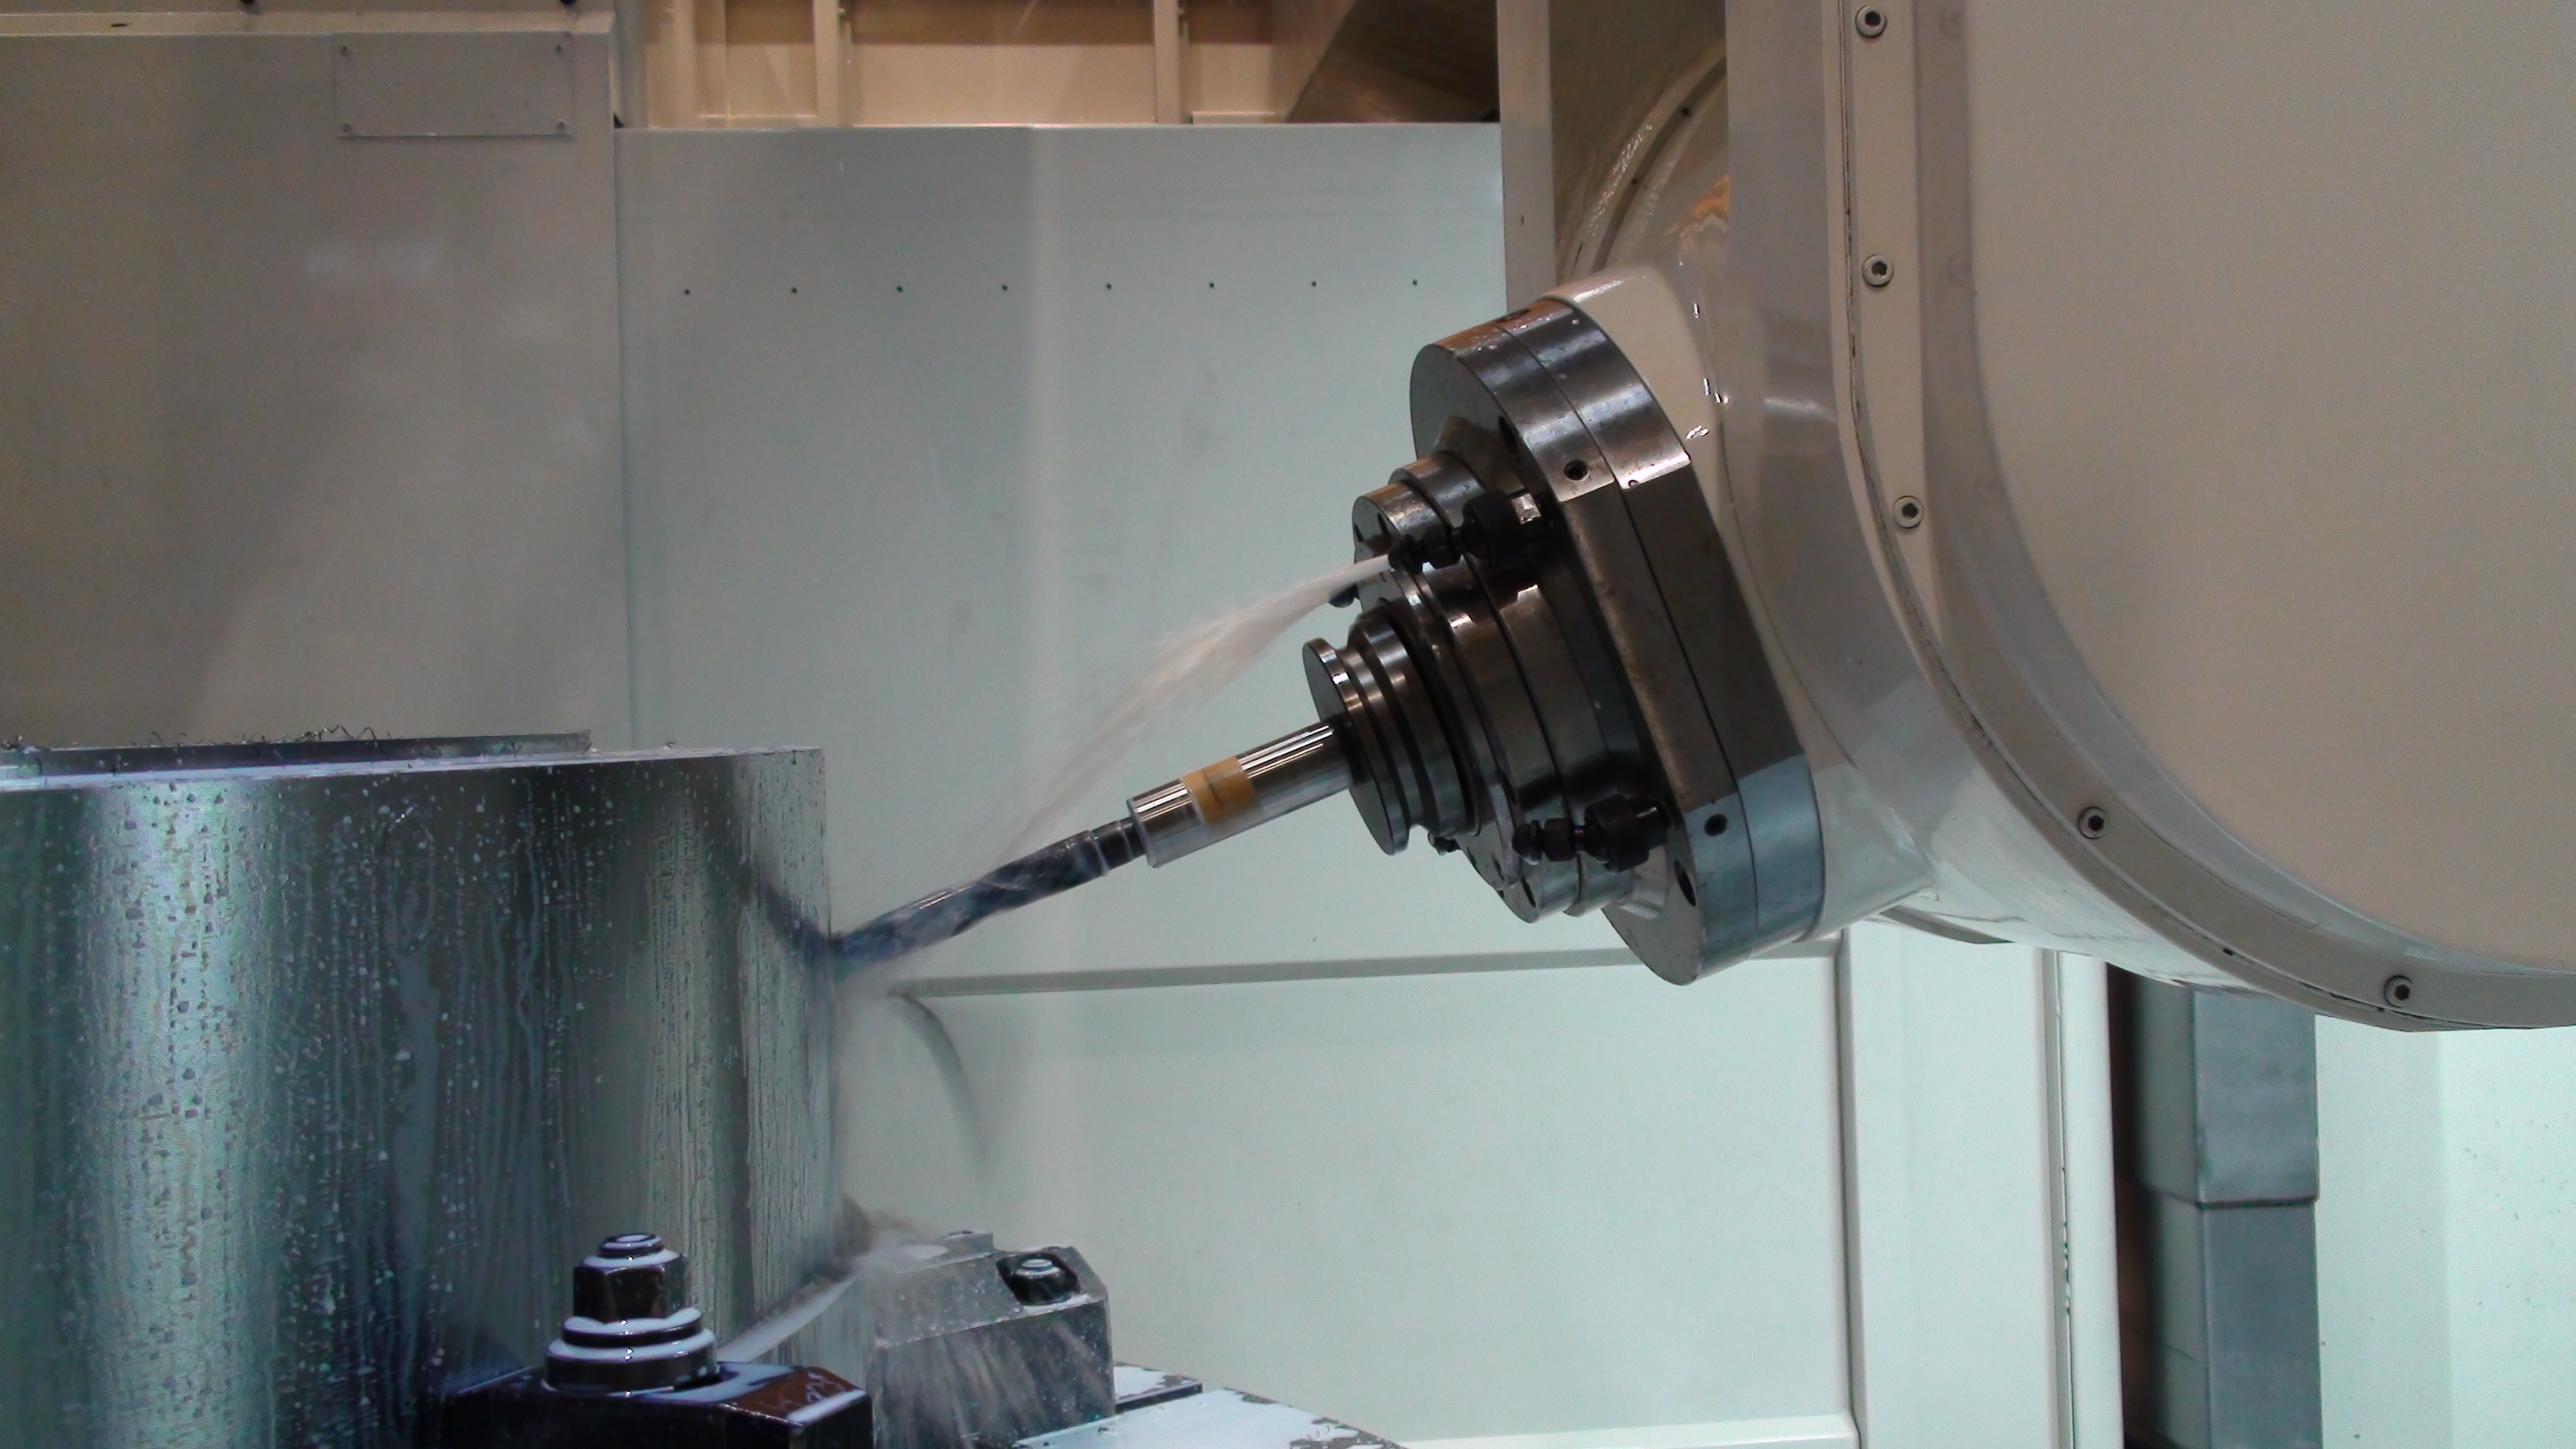 5-Axis processing